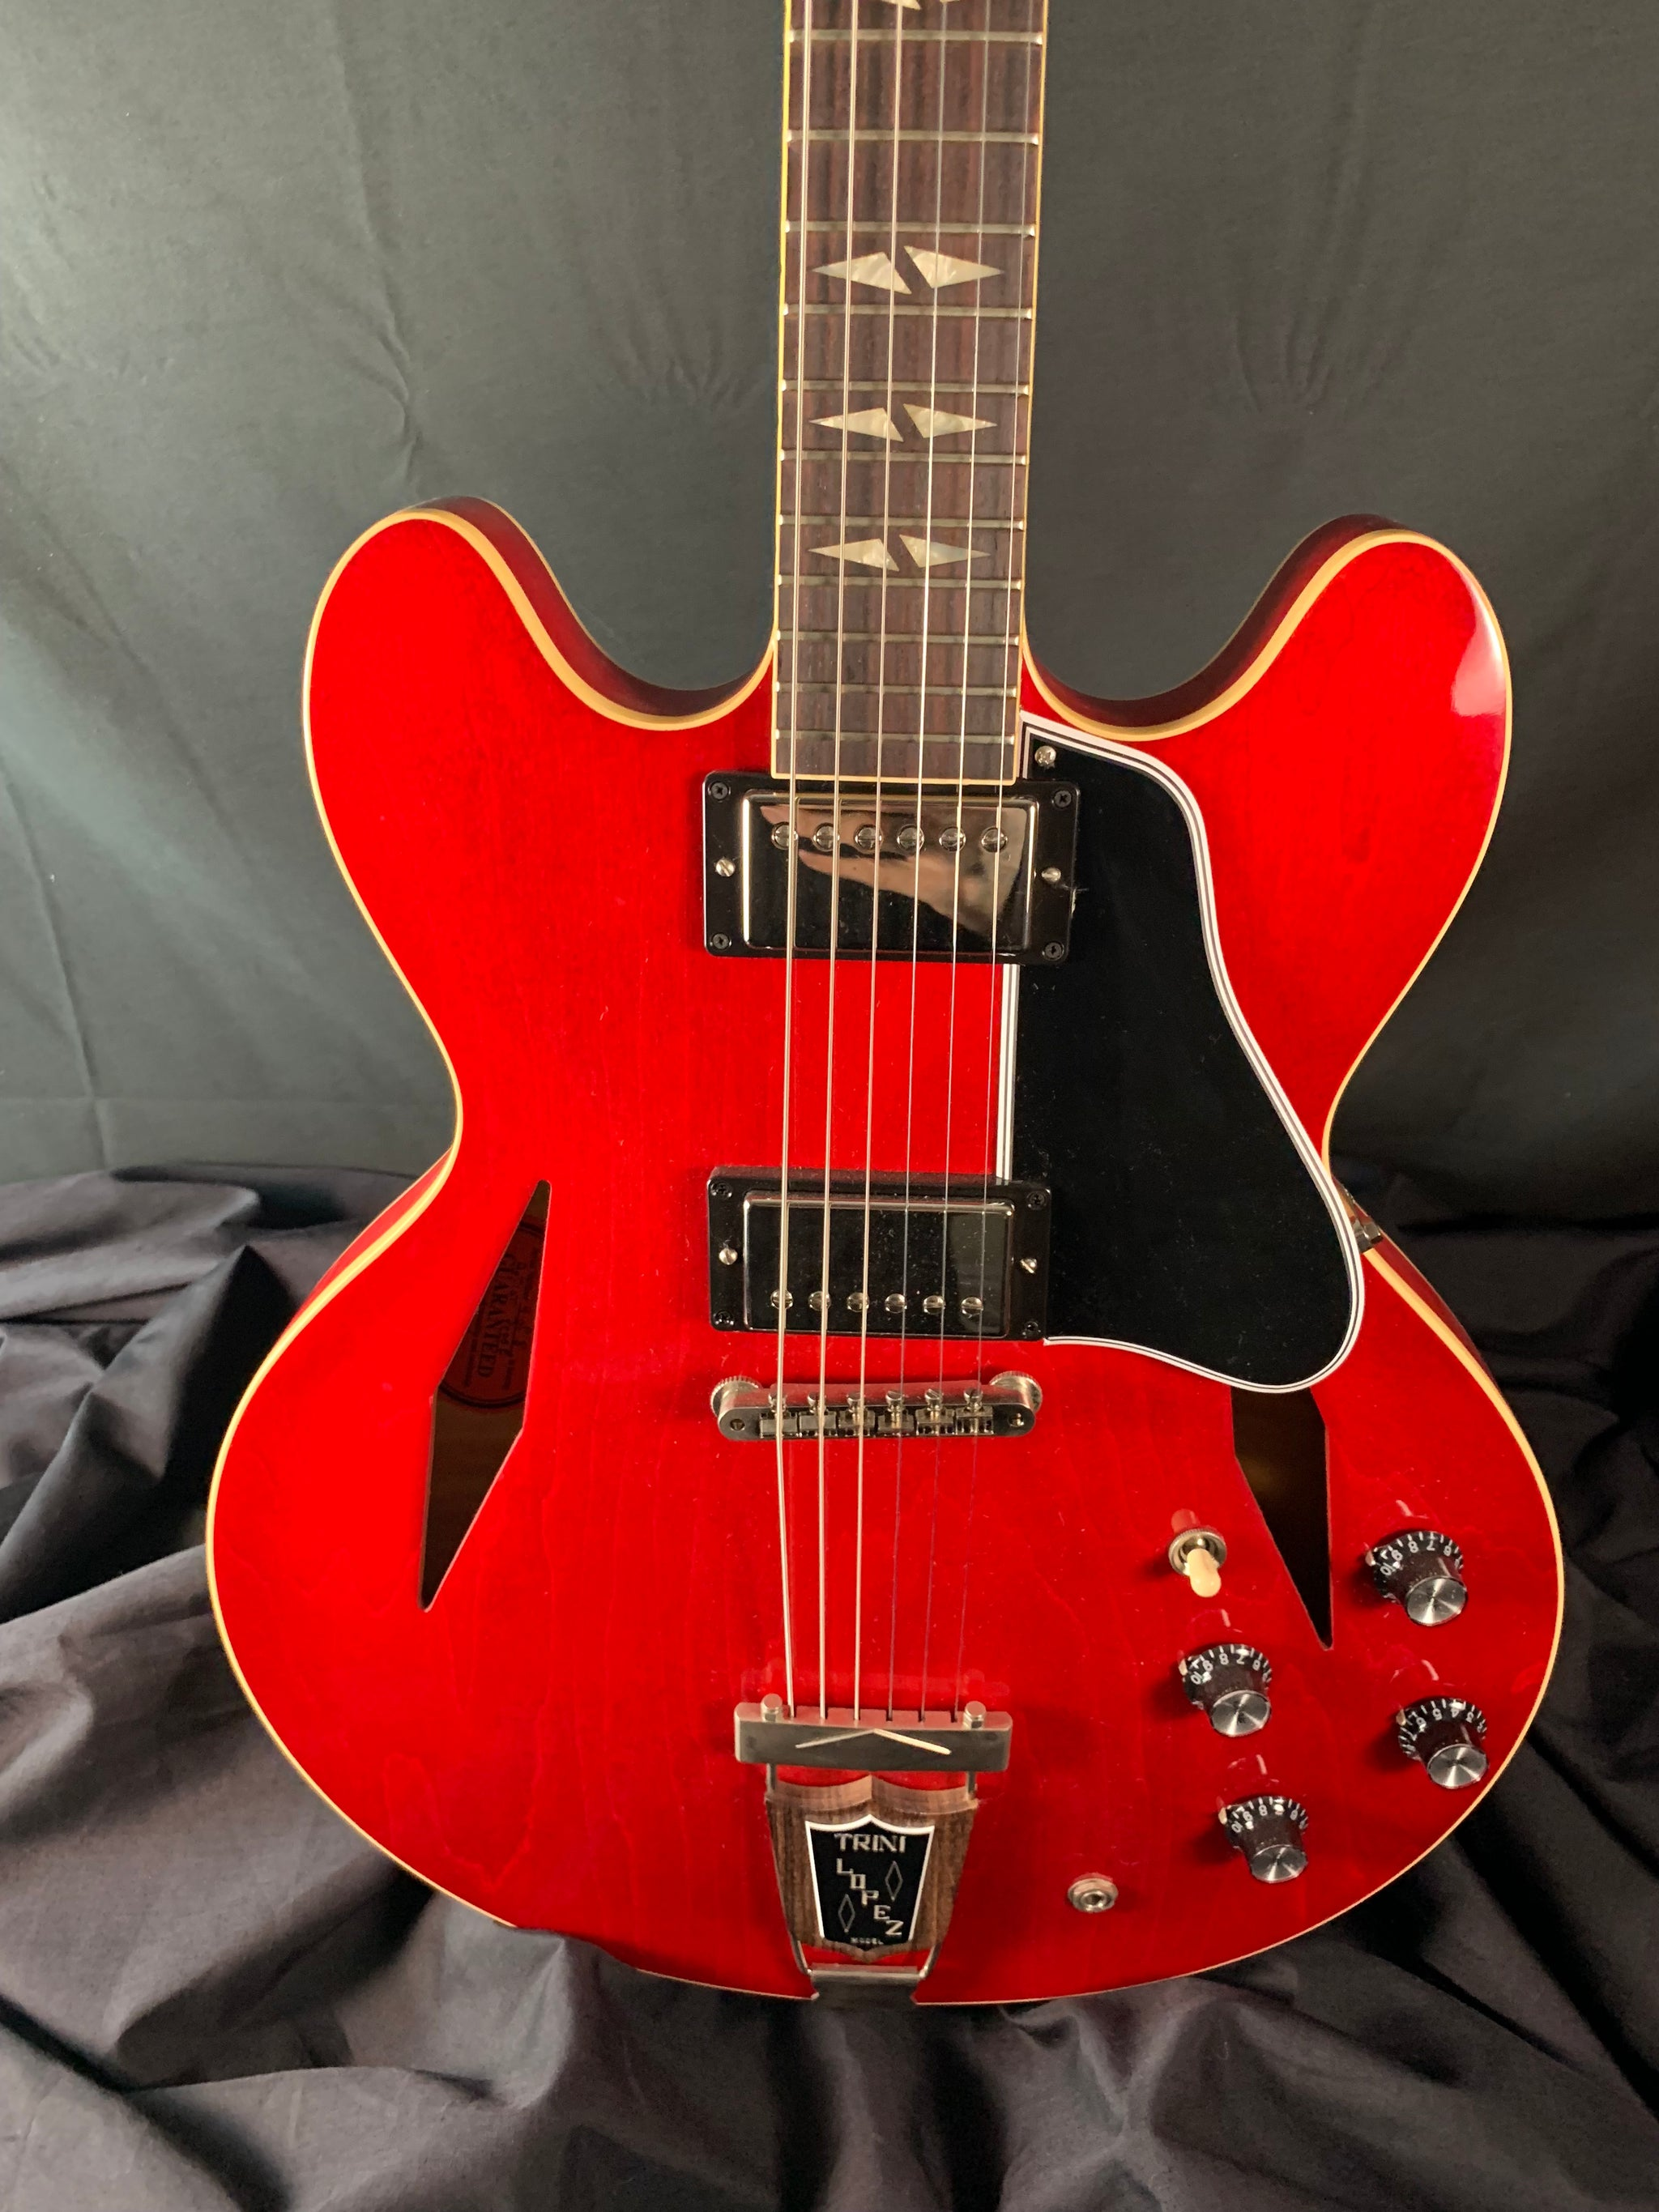 Gibson Trini Lopez Limited Edition No. 4 of 8